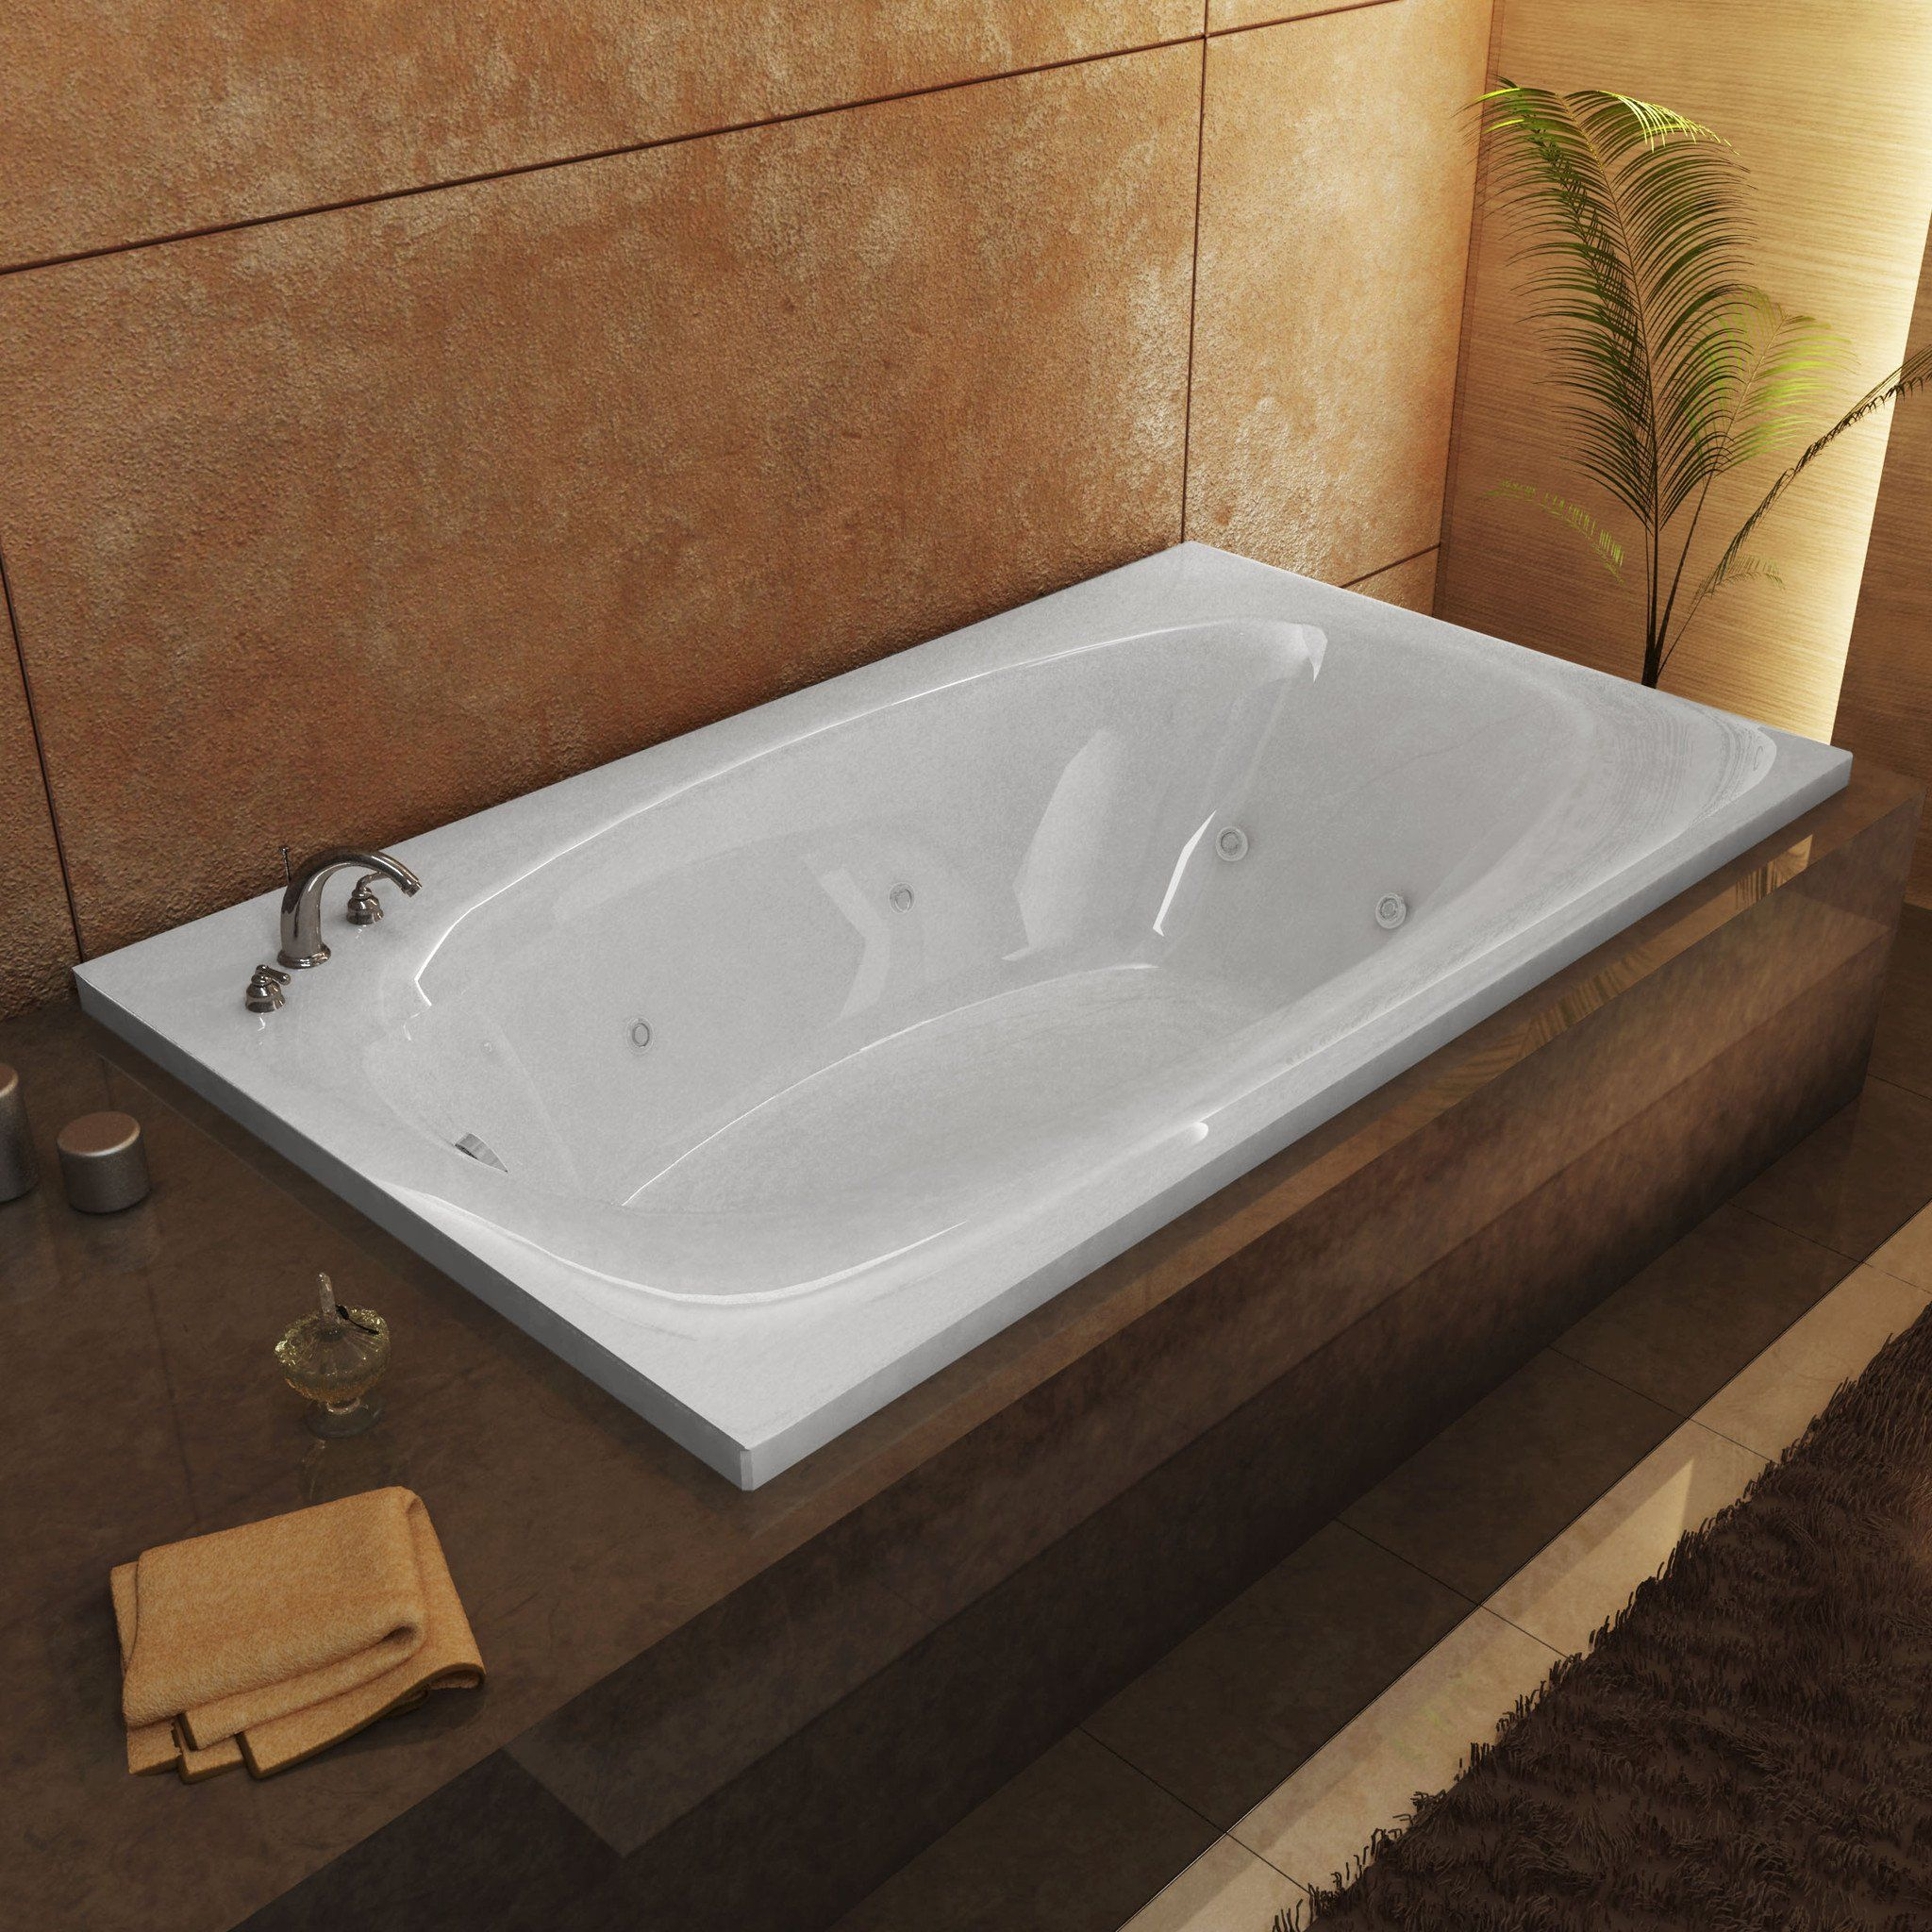 Are Bath Salts Safe For Jetted Tubs